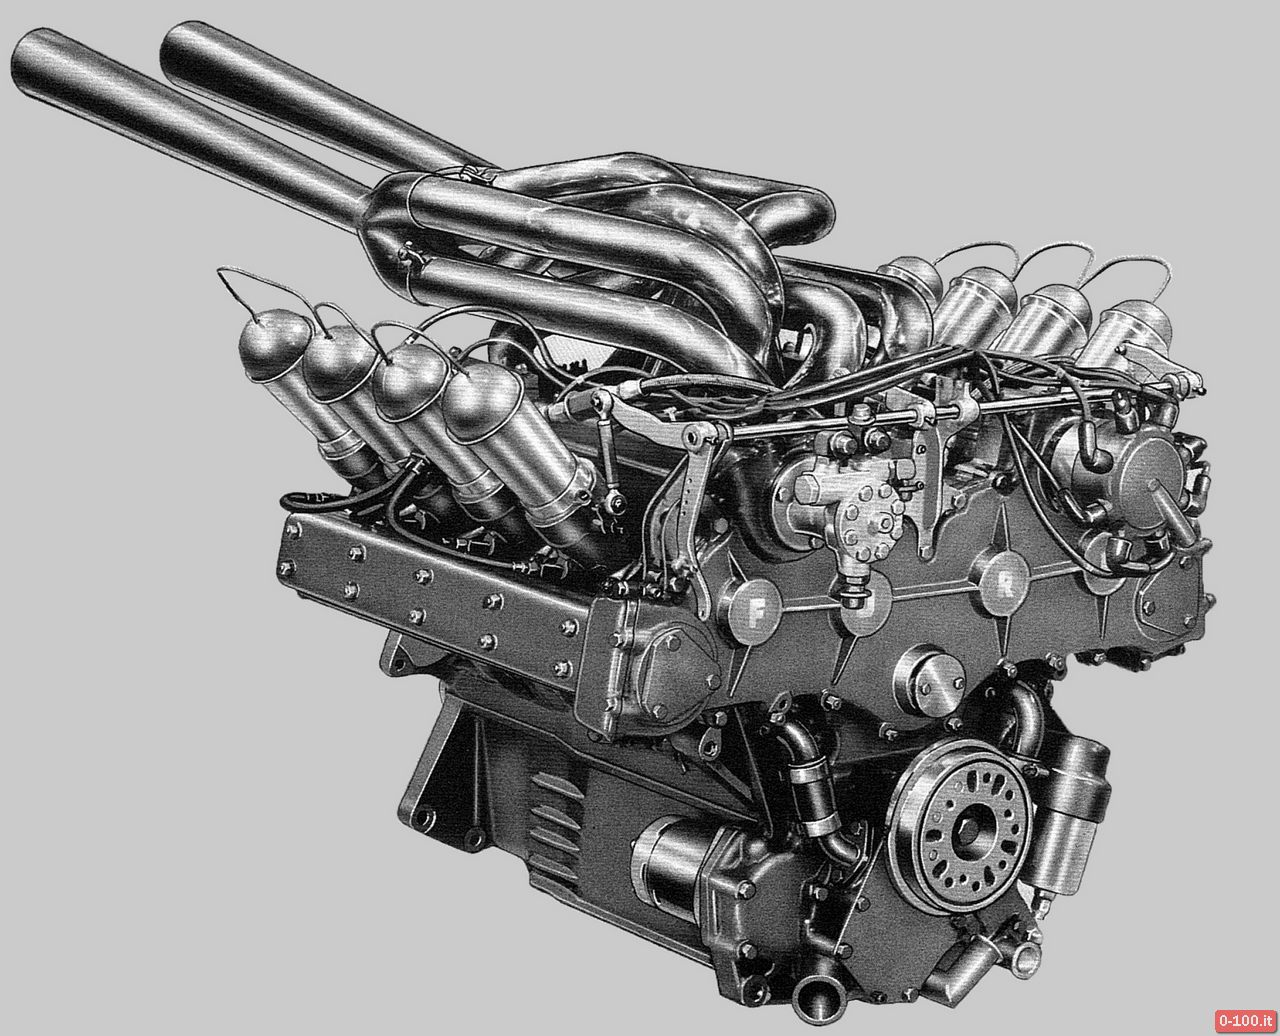 libri-ford-small-block-v8-racing-engines-1962-1970-veloce-publishing-0-100_2